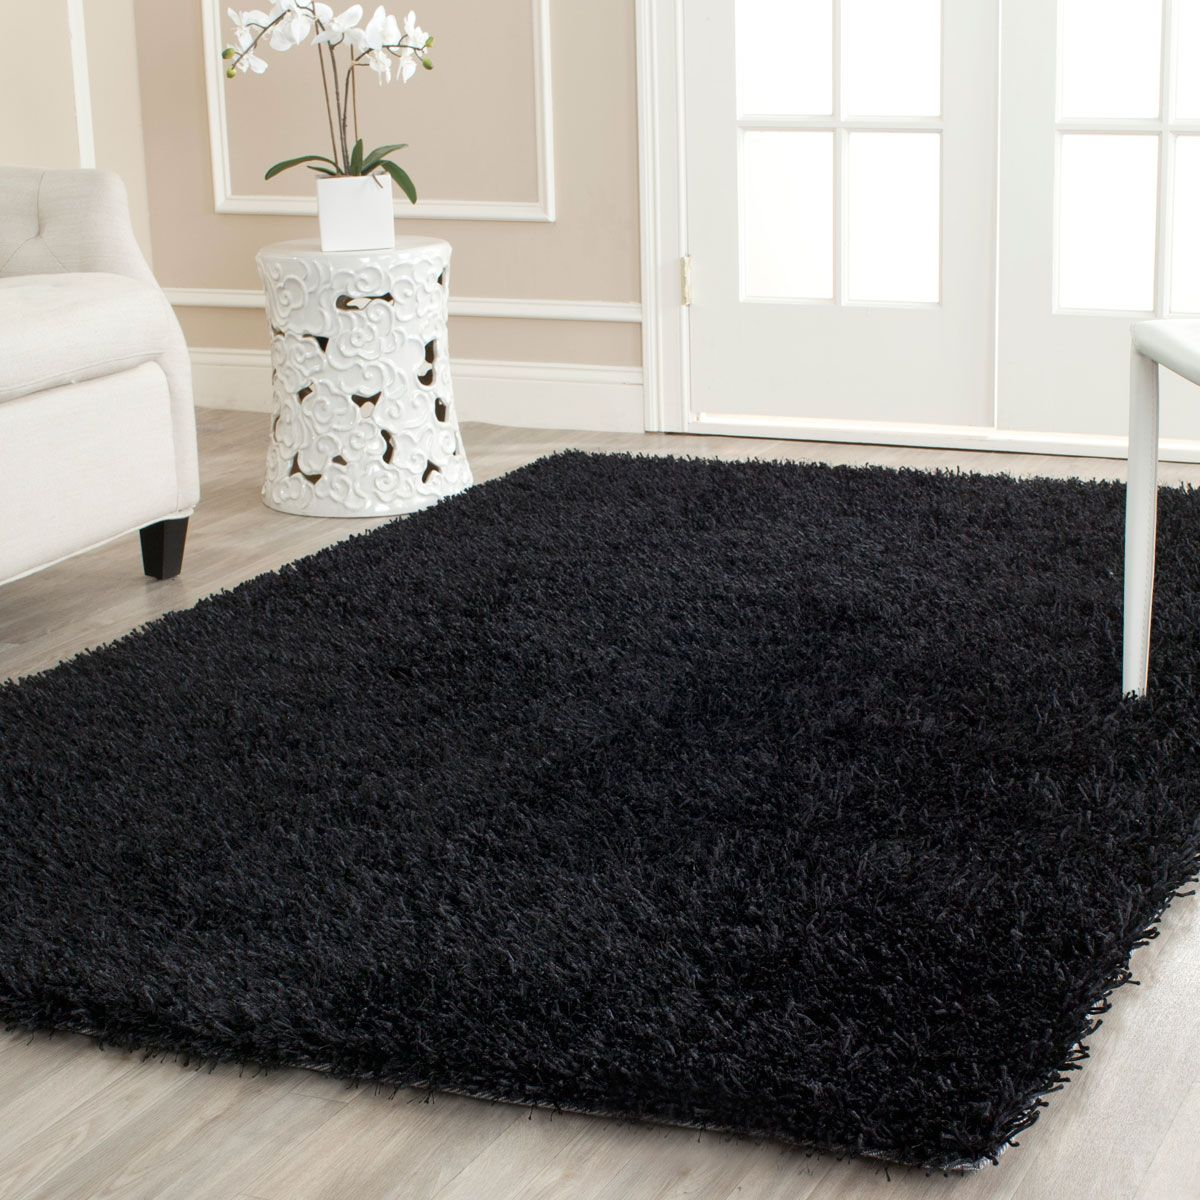 Plush Black Shag Power Loom And Shag Rugs